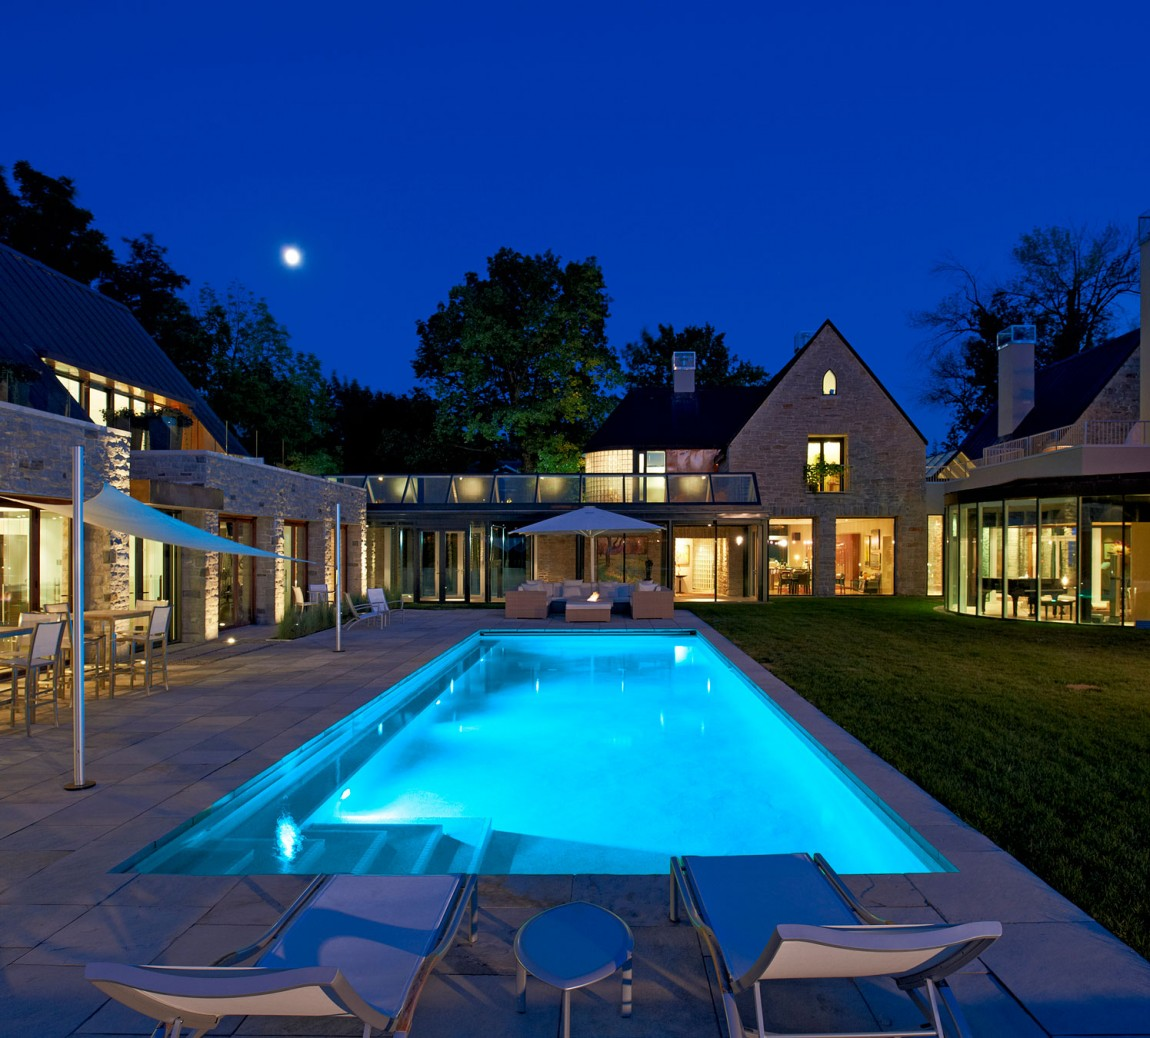 299 Soper Place by Barry J. Hobin + Associates Architects Inc.